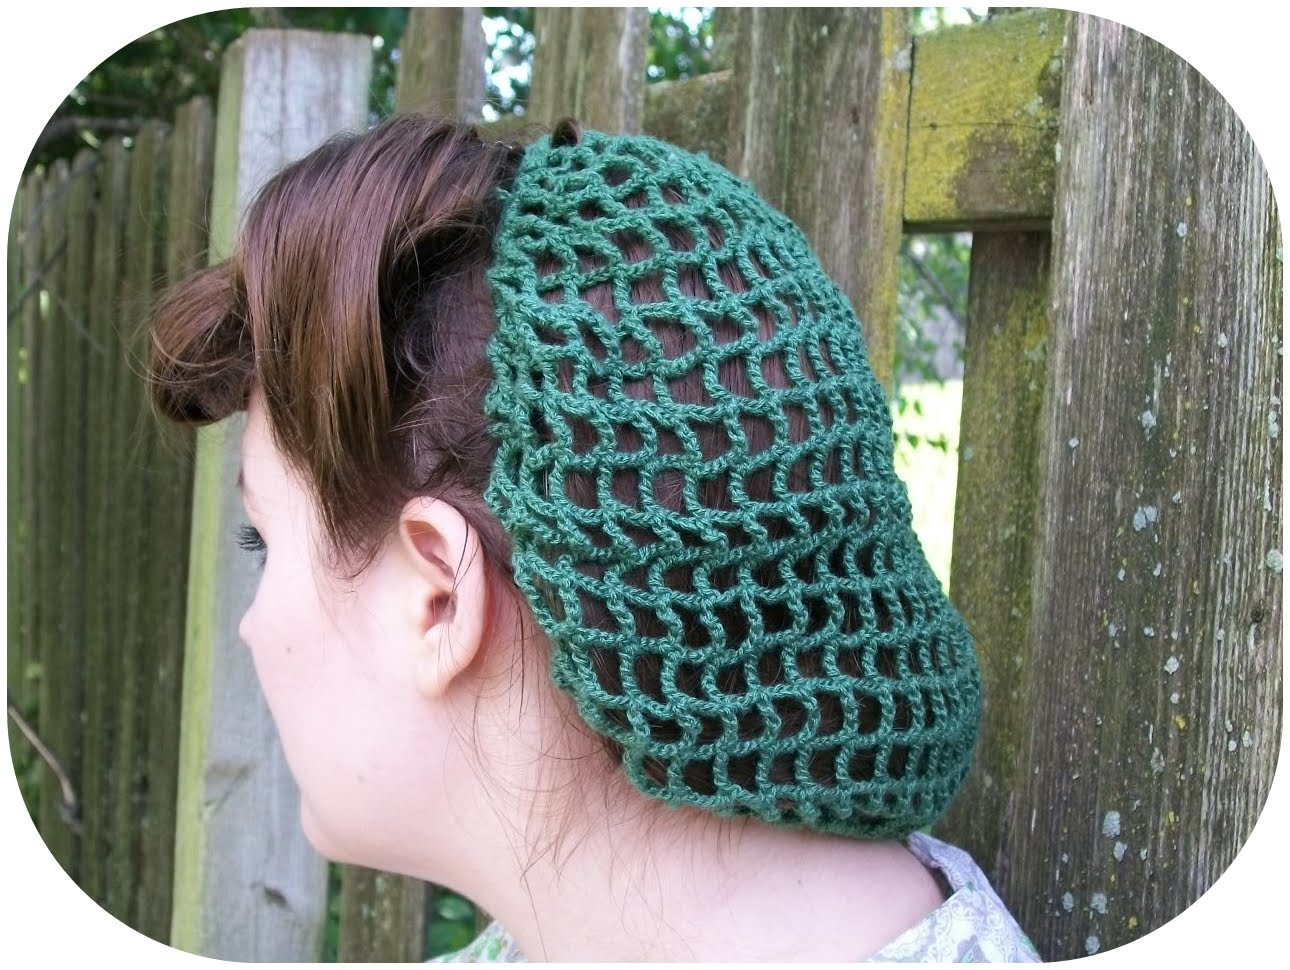 Crochet Snood : crocheted snood pattern crochet snood pattern crochet a snood snood ...